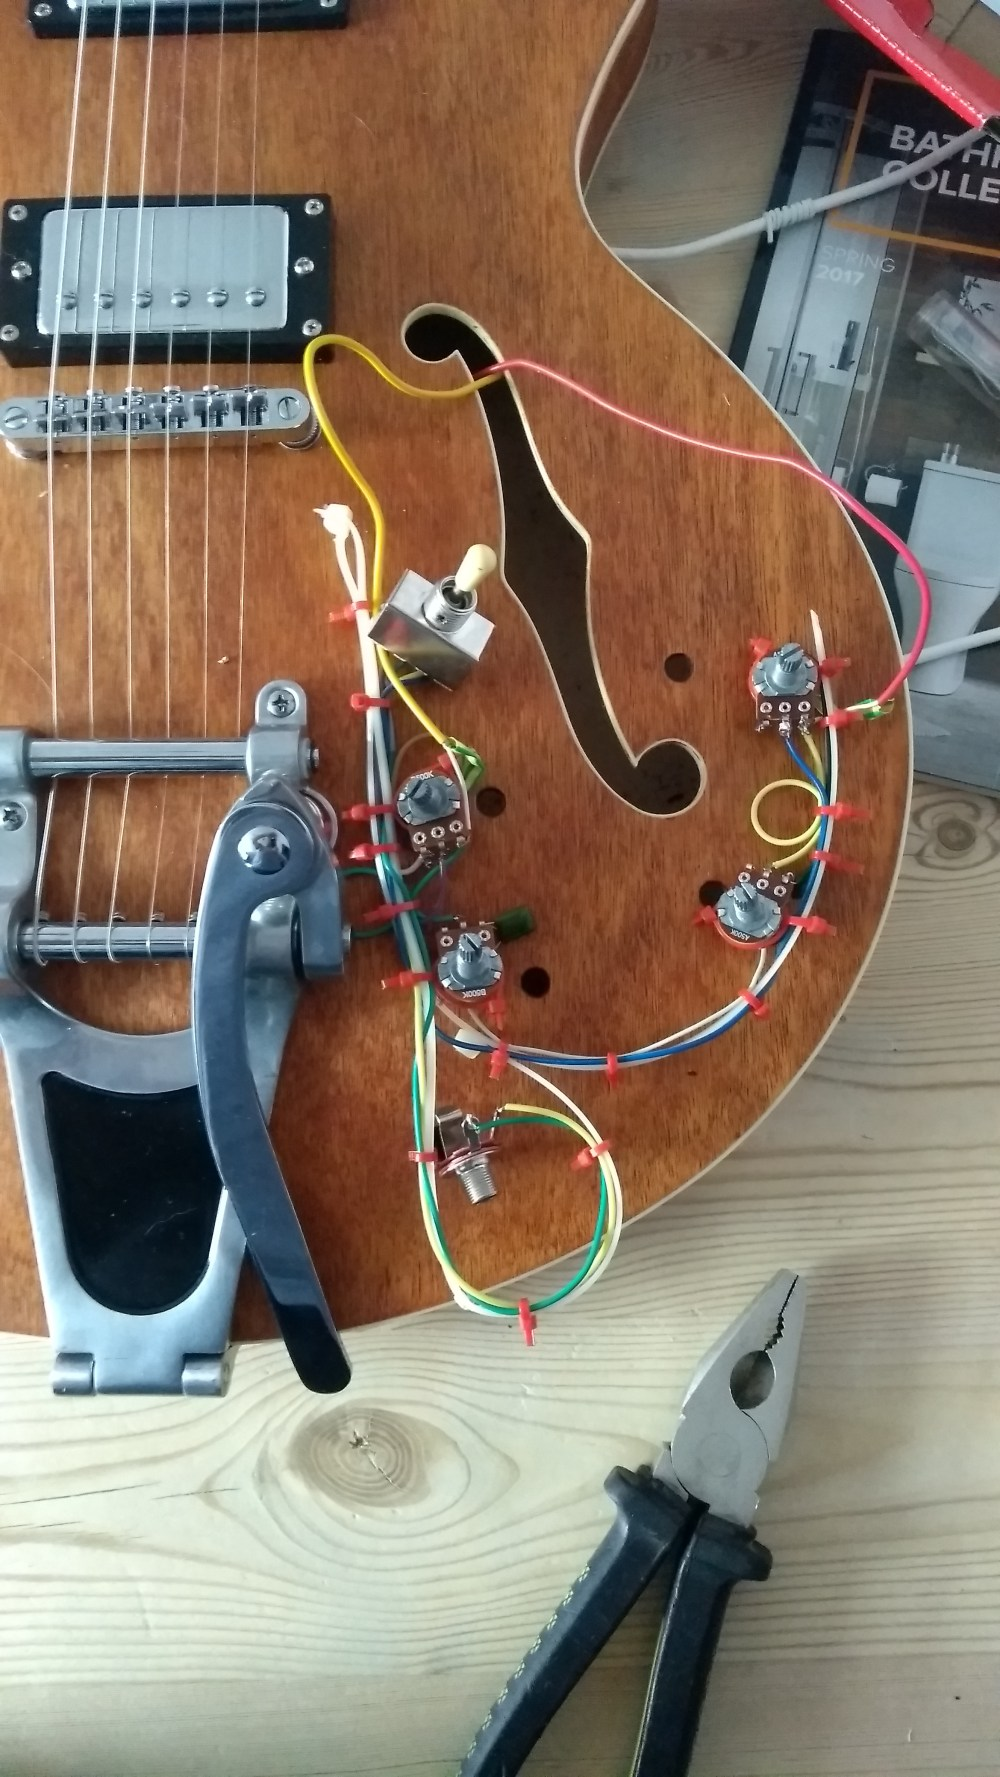 medium resolution of diy guitar u2013 the wiring day 2 u2013 lunarfish